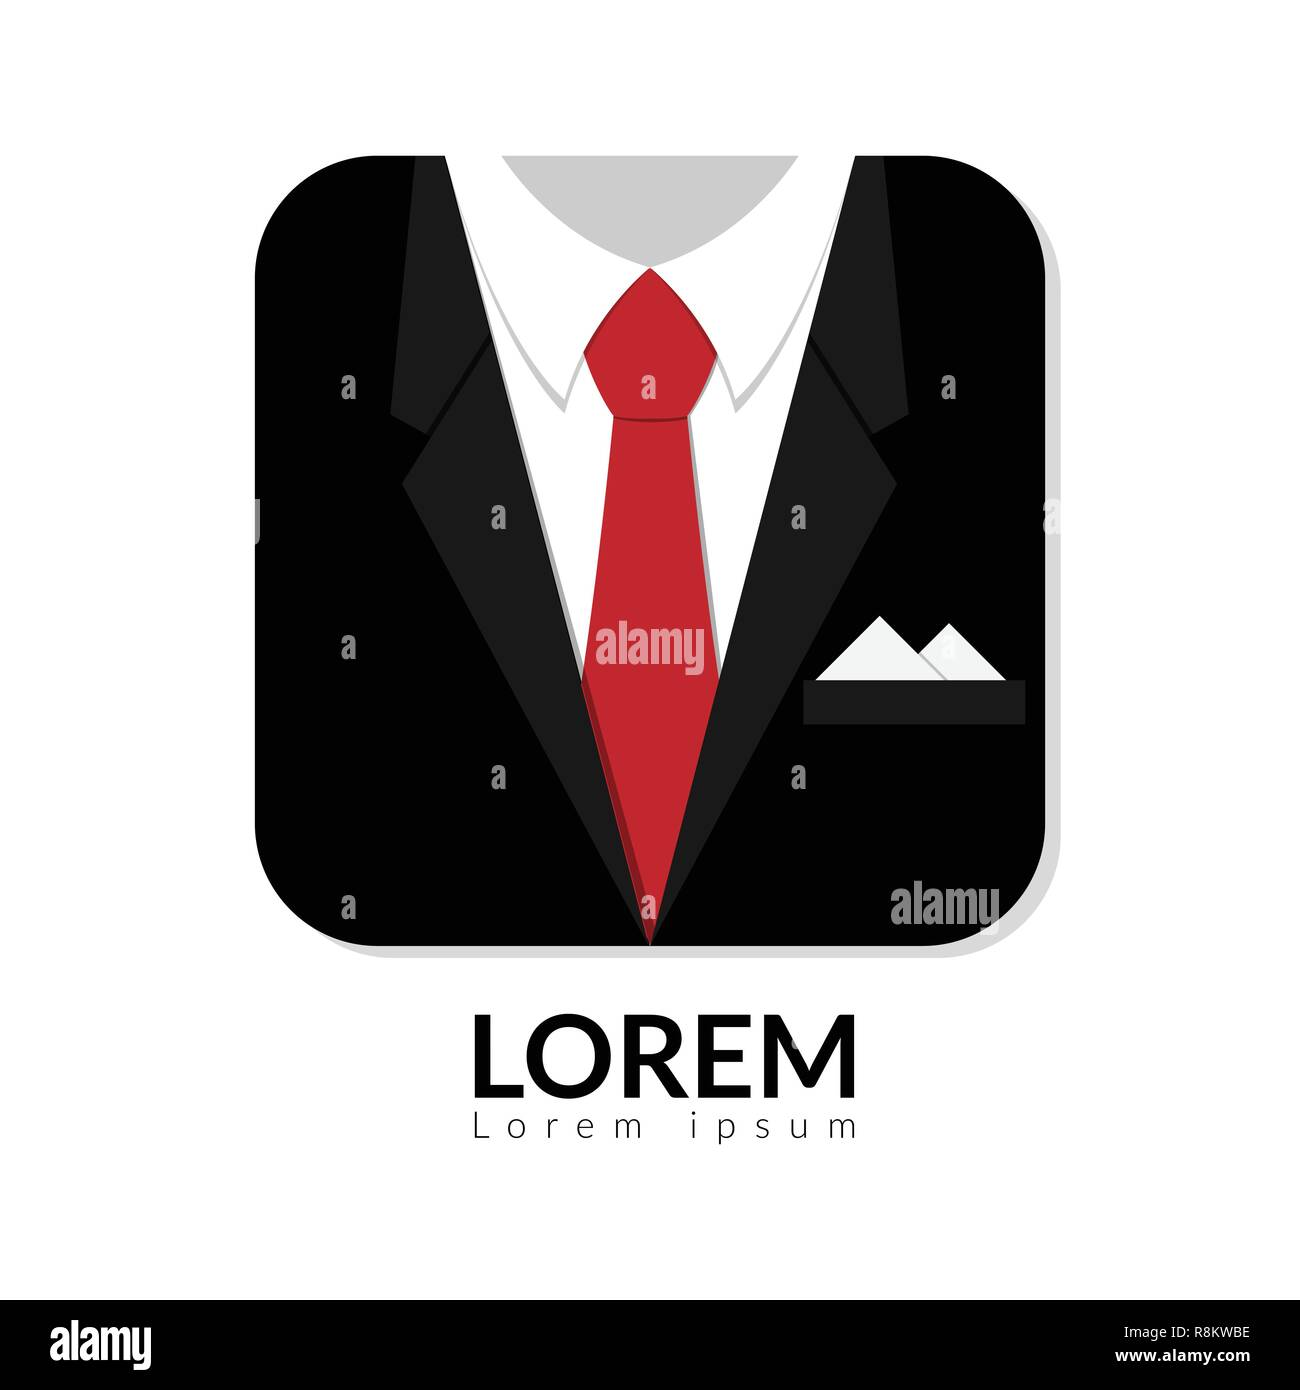 vector illustration of black man suit with red tie and white shirt isolated on white background. business man in suit logo with copy space, man in sui - Stock Vector